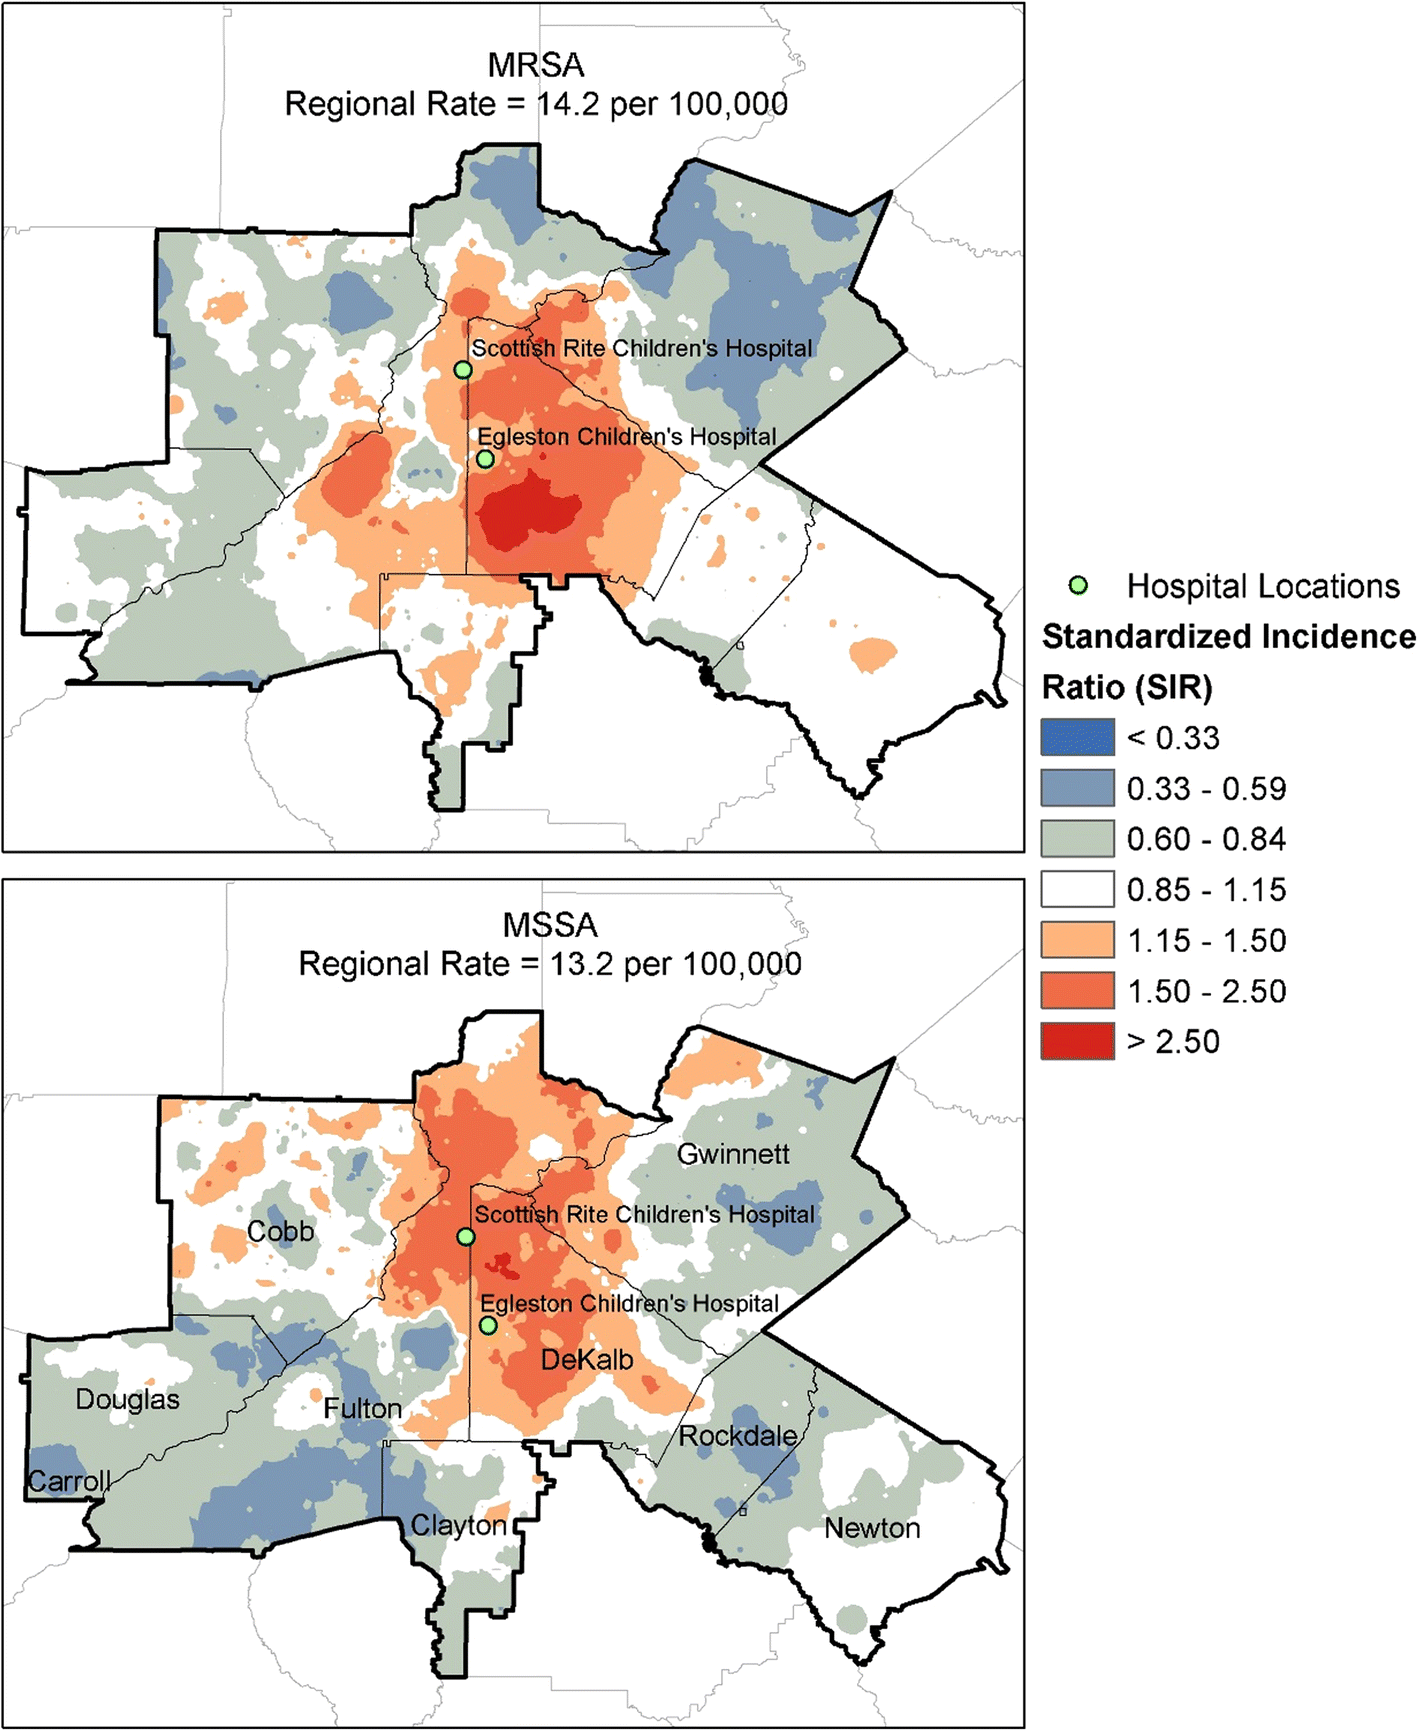 Geographic surveillance of community associated MRSA infections in